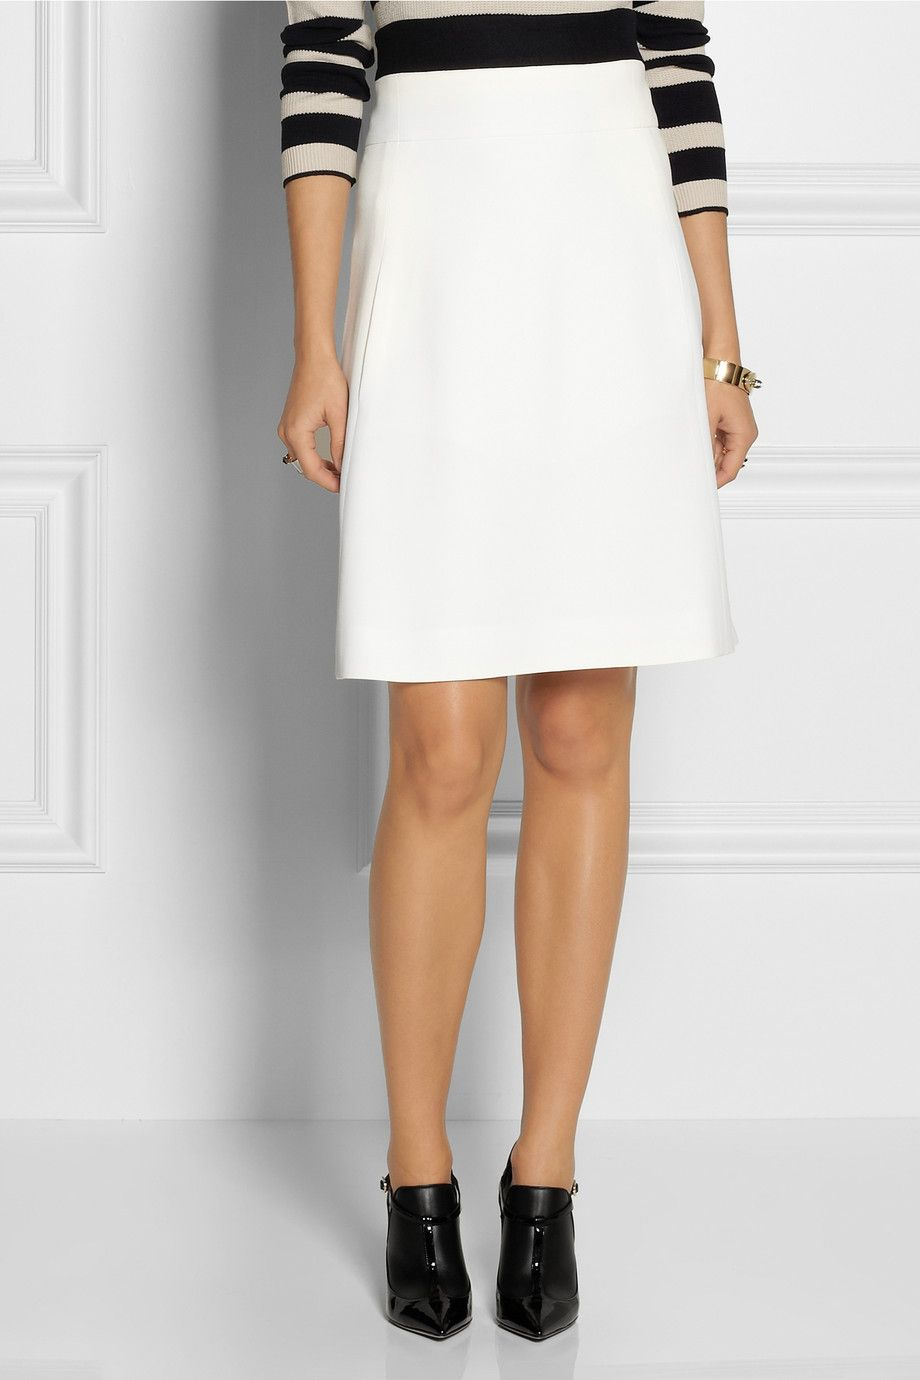 White A-line short #skirt | Chloé